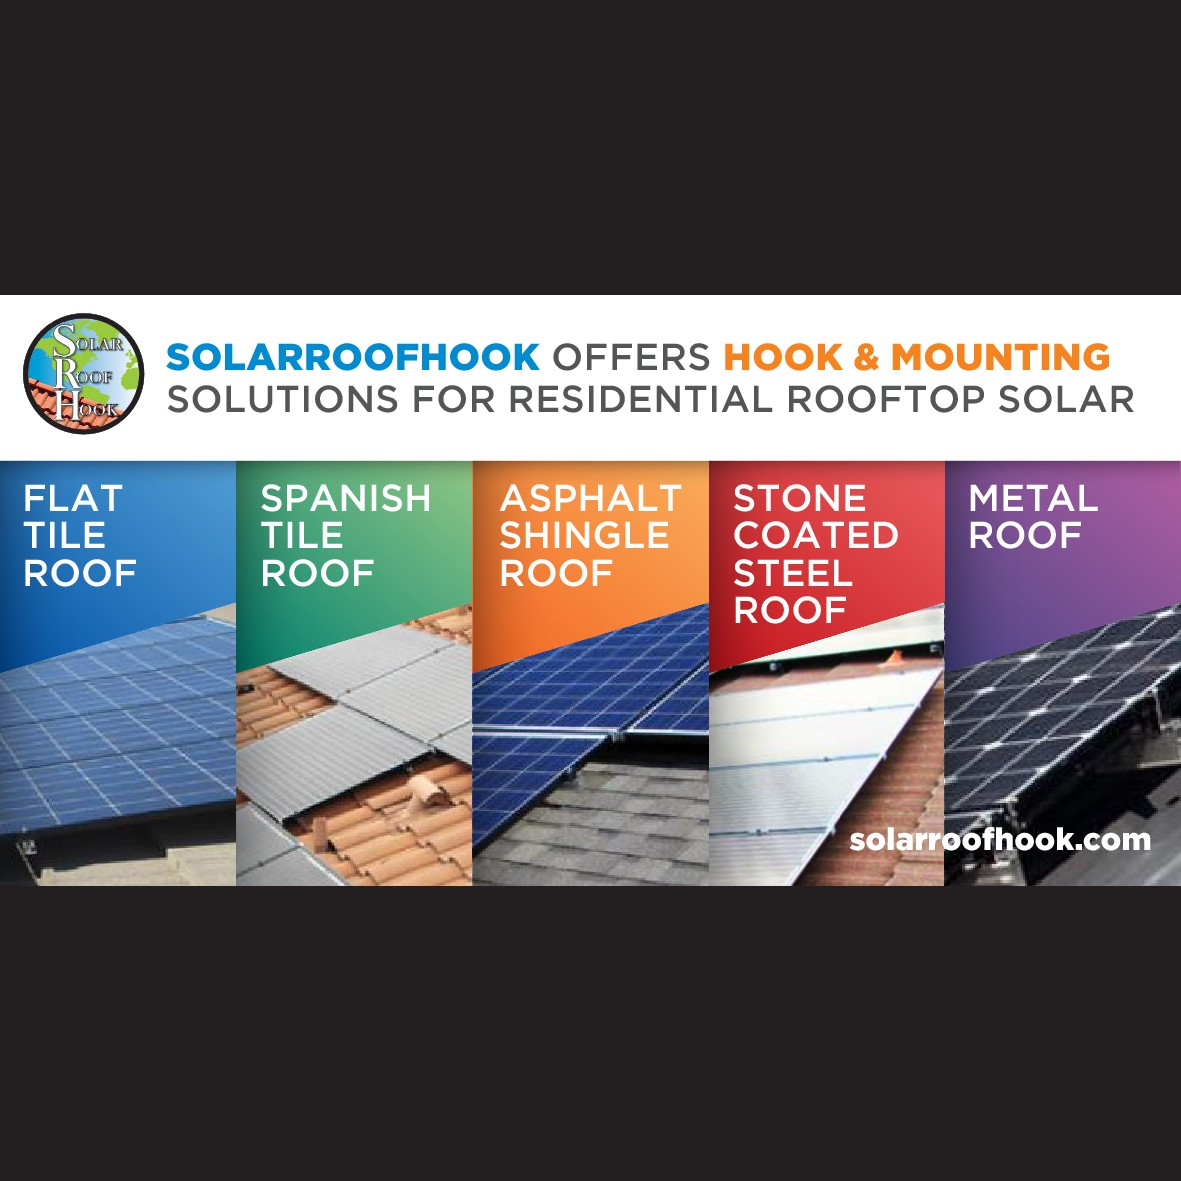 Design a Wall Banner for a Solar Company